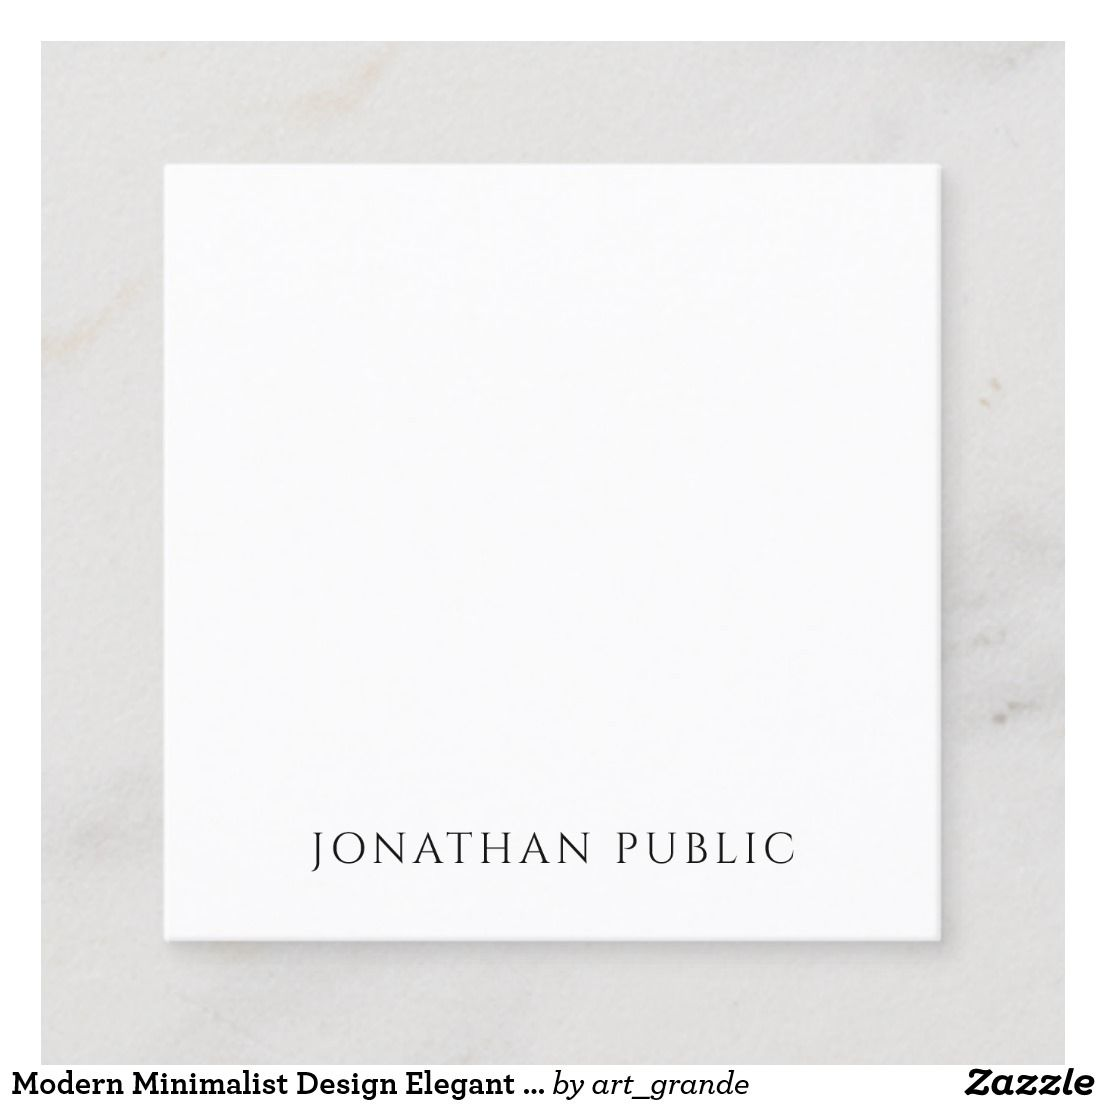 Modern Minimalist Design Elegant Template Trendy Square Business Card Zazzle Com Simple Business Cards Square Business Card Minimalist Business Cards